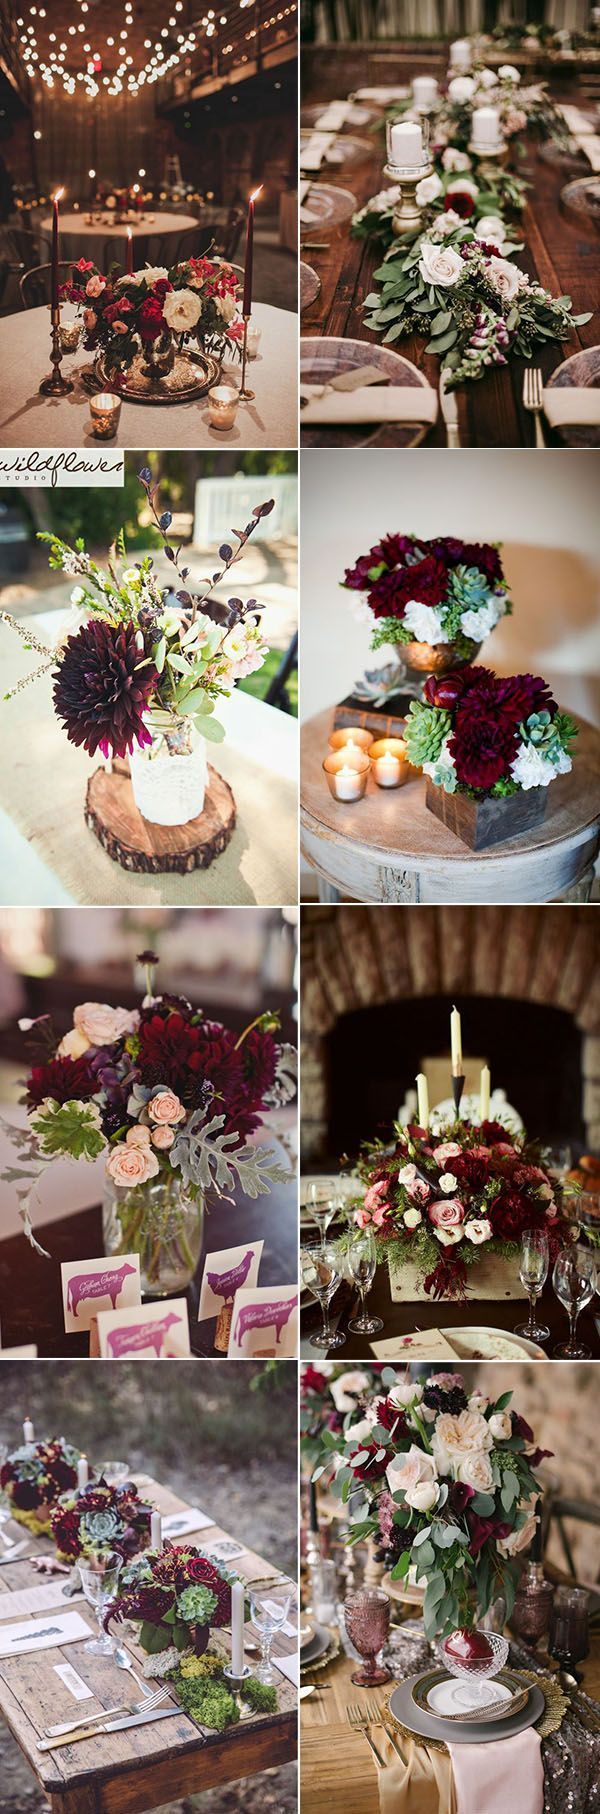 50 refined burgundy and marsala wedding color ideas for fall 50 refined burgundy and marsala wedding color ideas for fall brides junglespirit Choice Image